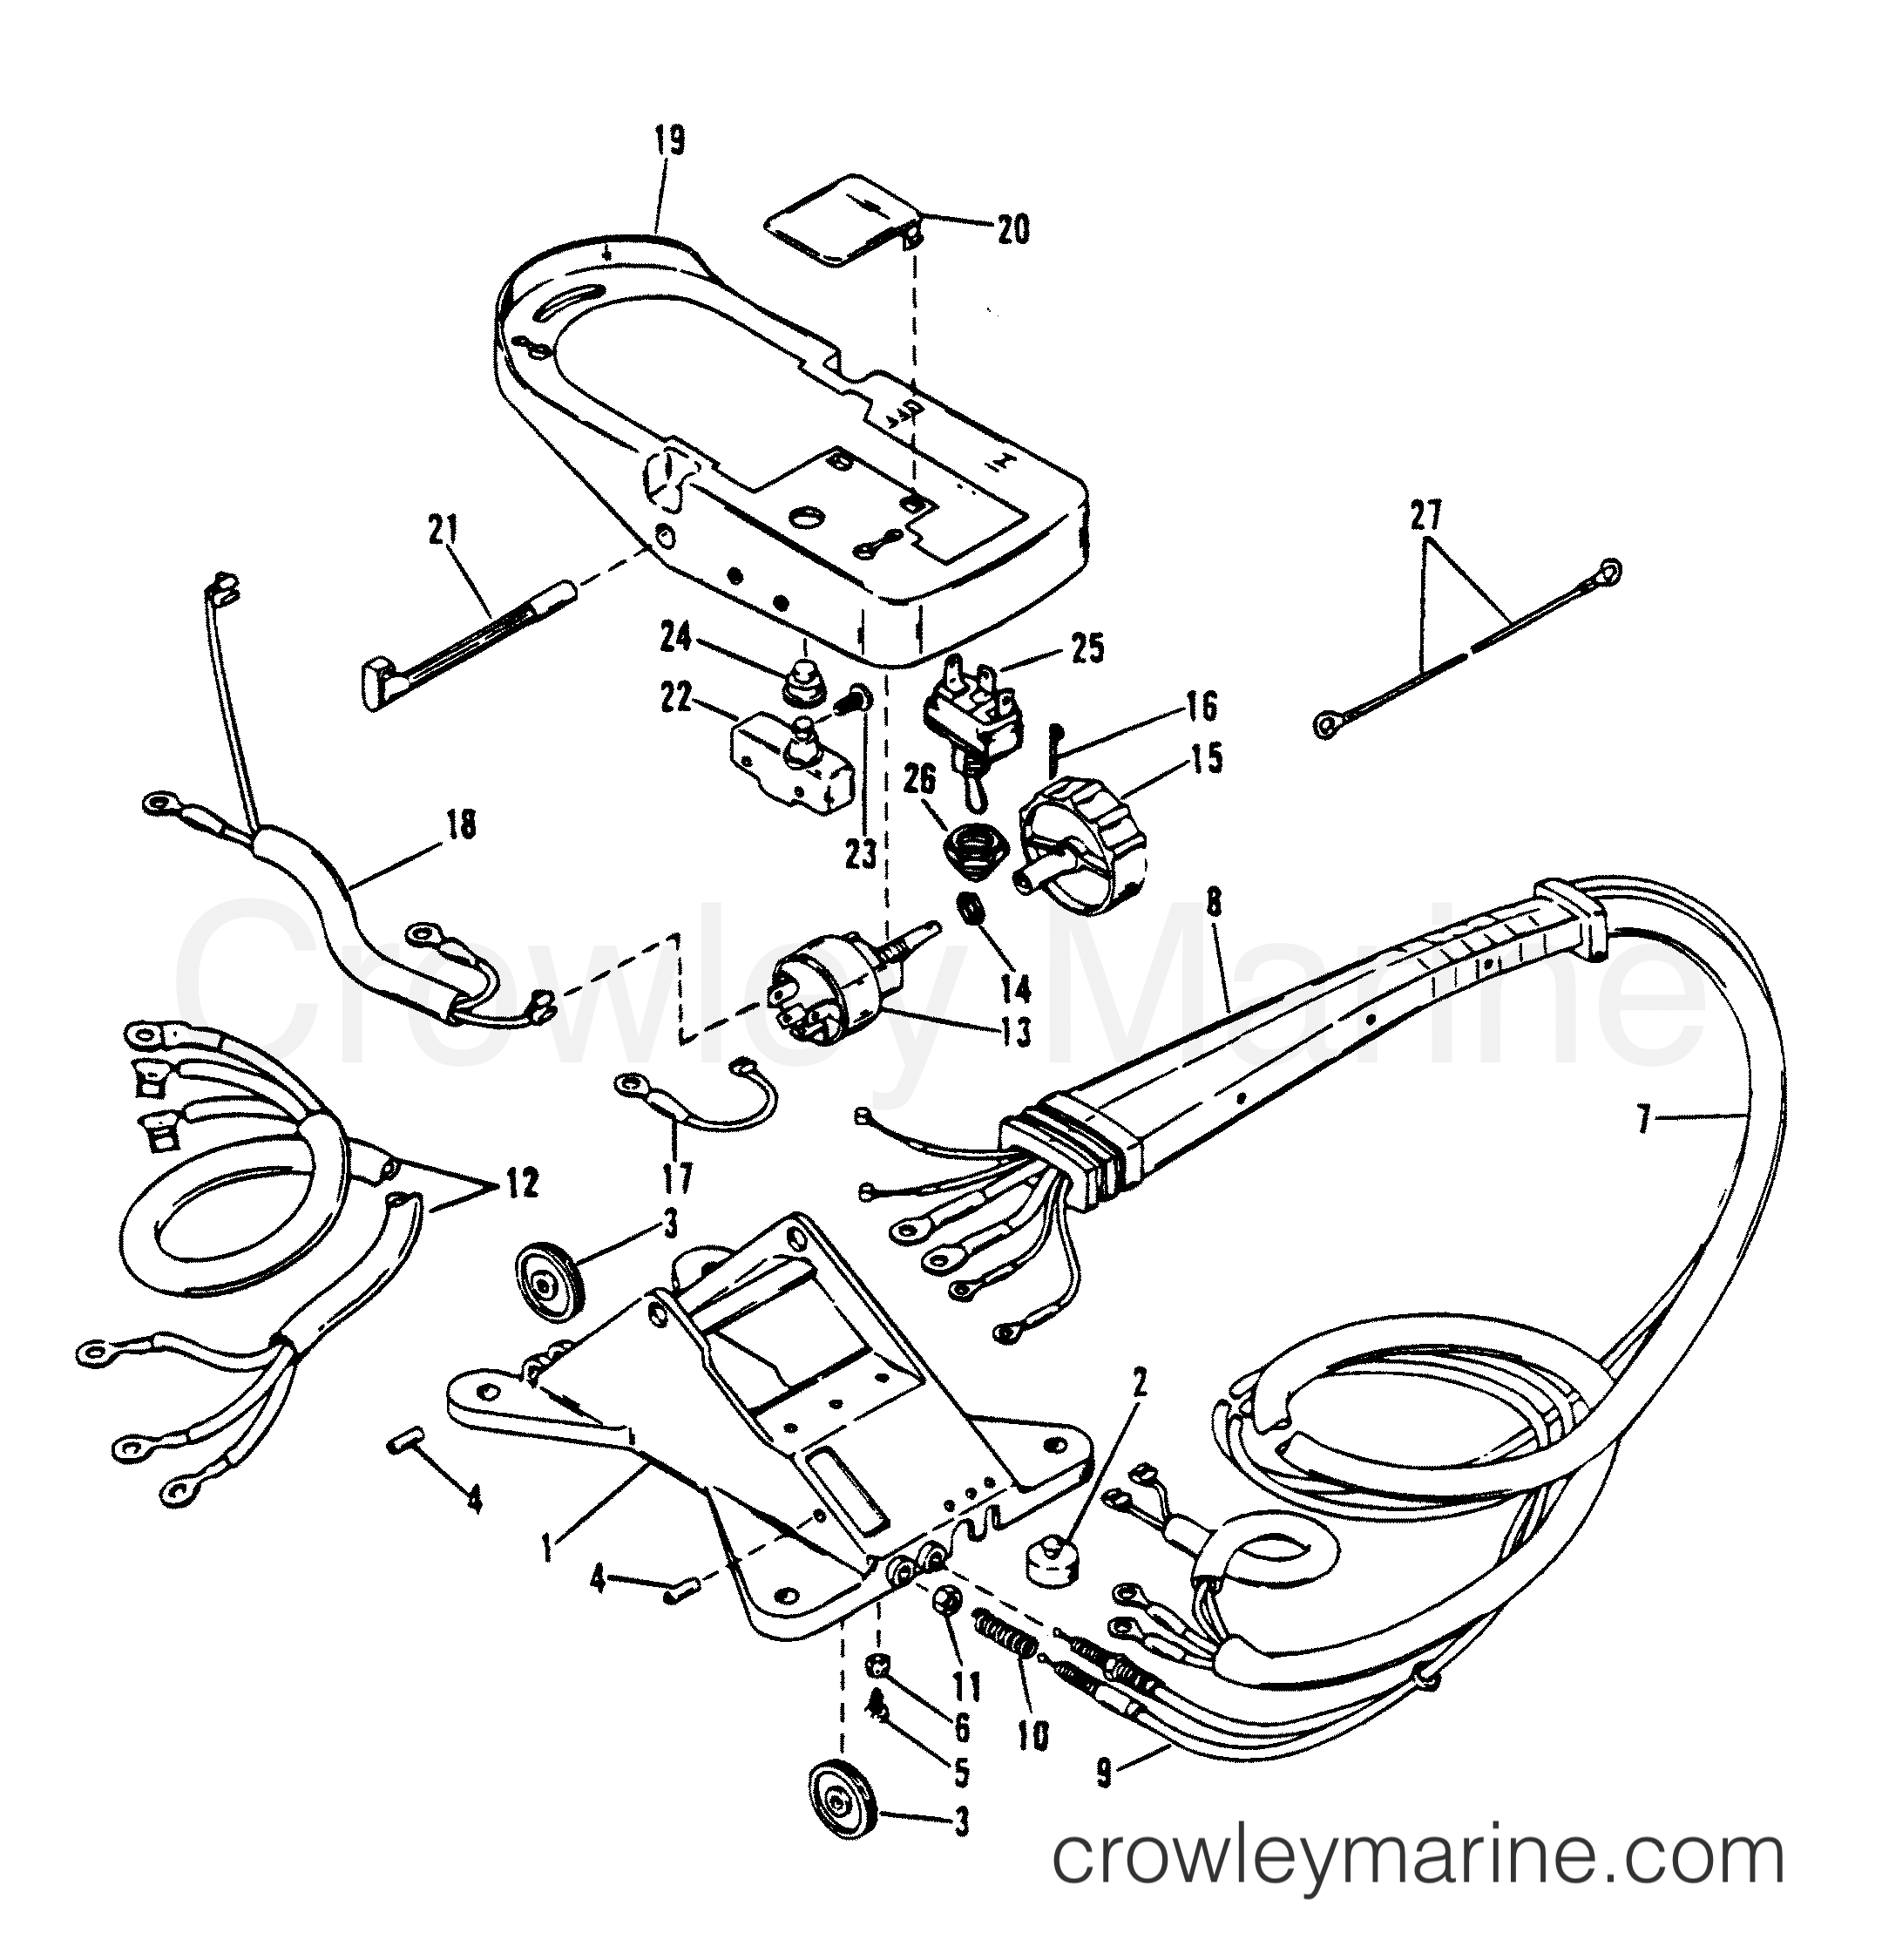 Wiring Harness And Foot Plate Rc